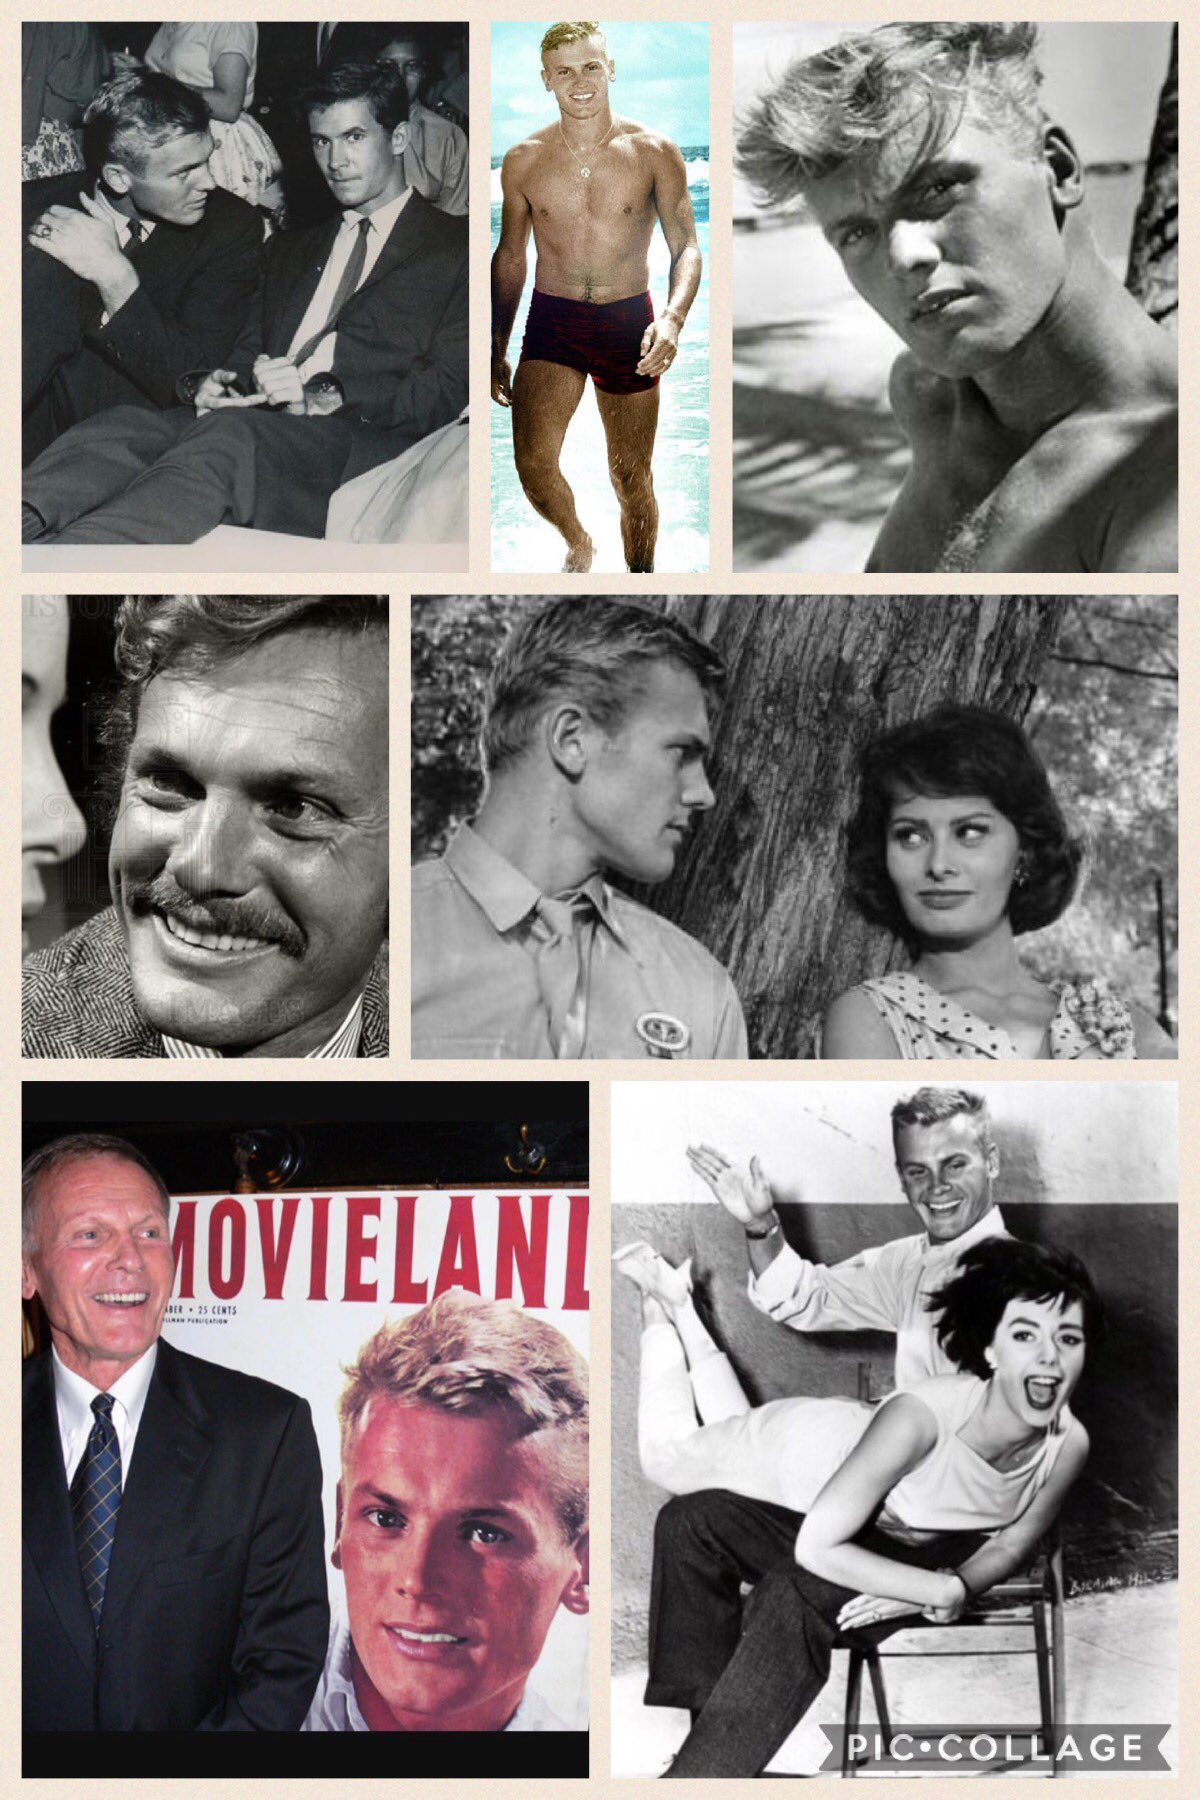 Happy 86th birthday to the actor and singer Tab Hunter!